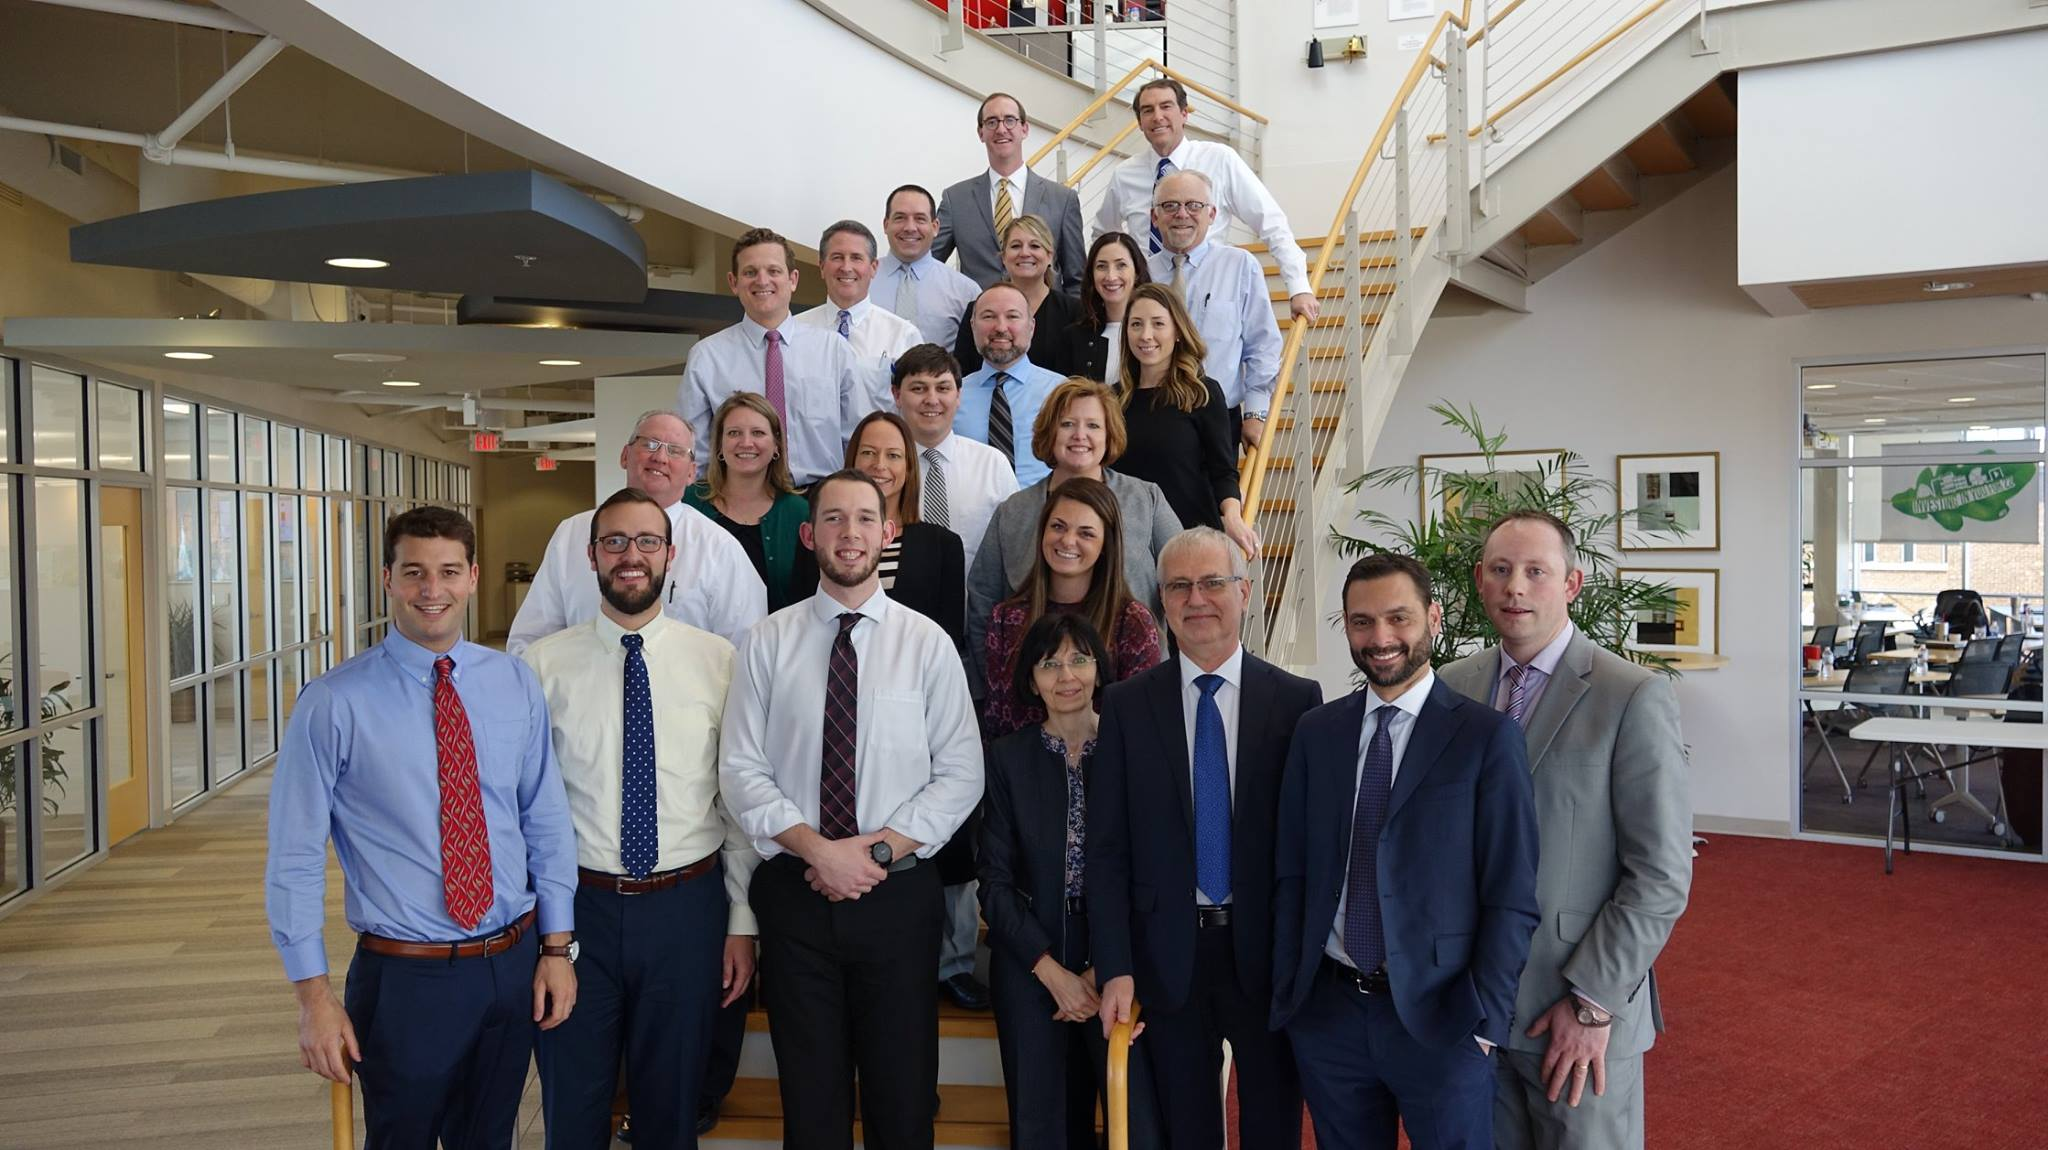 Charles Aris team members proudly hosted the InterSearch board of directors in mid-March 2018